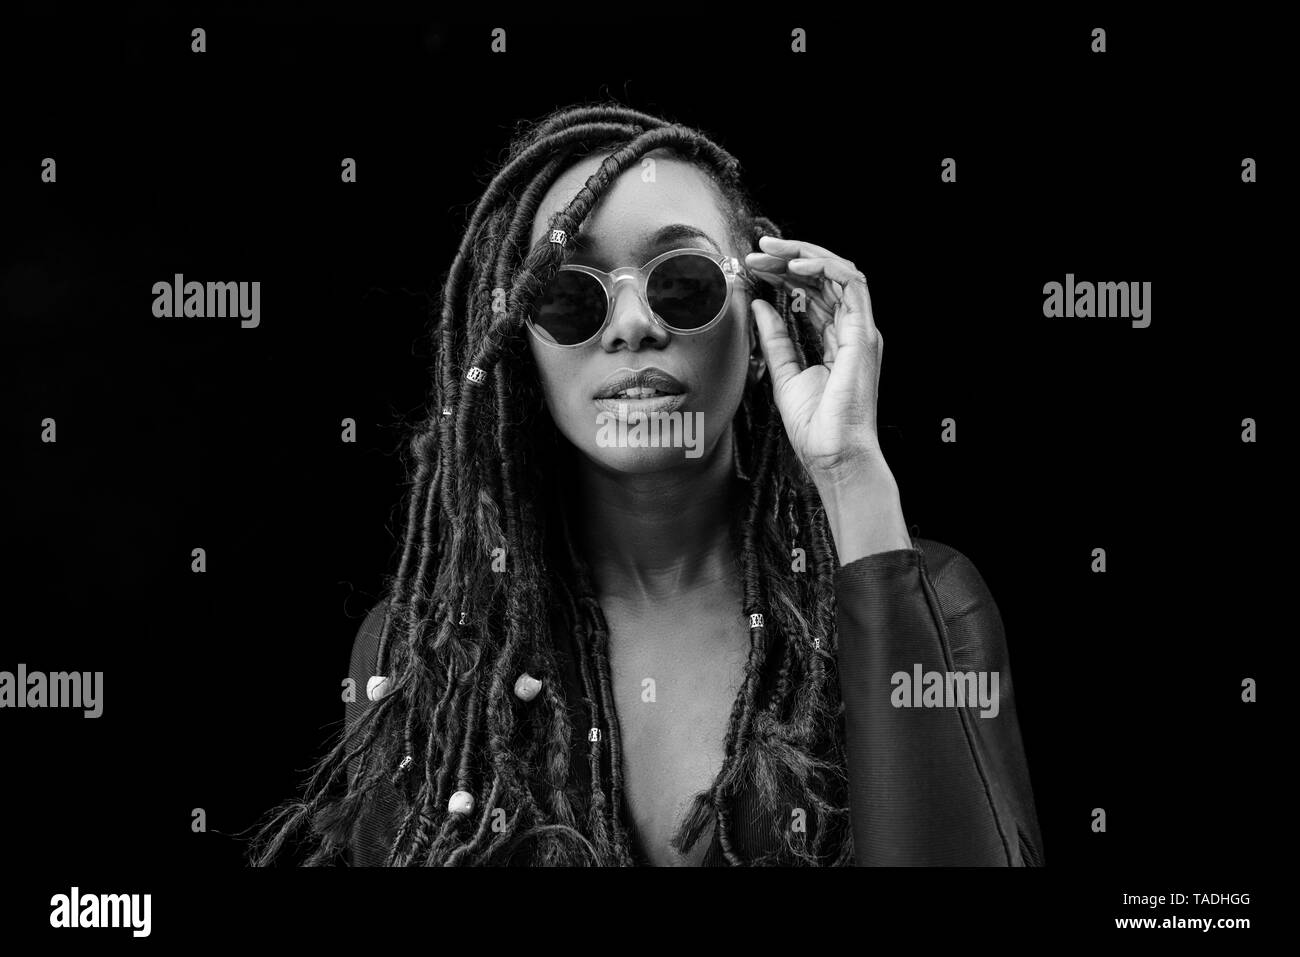 Portrait of woman with dreadlocks wearing sunglasses in front of black background - Stock Image